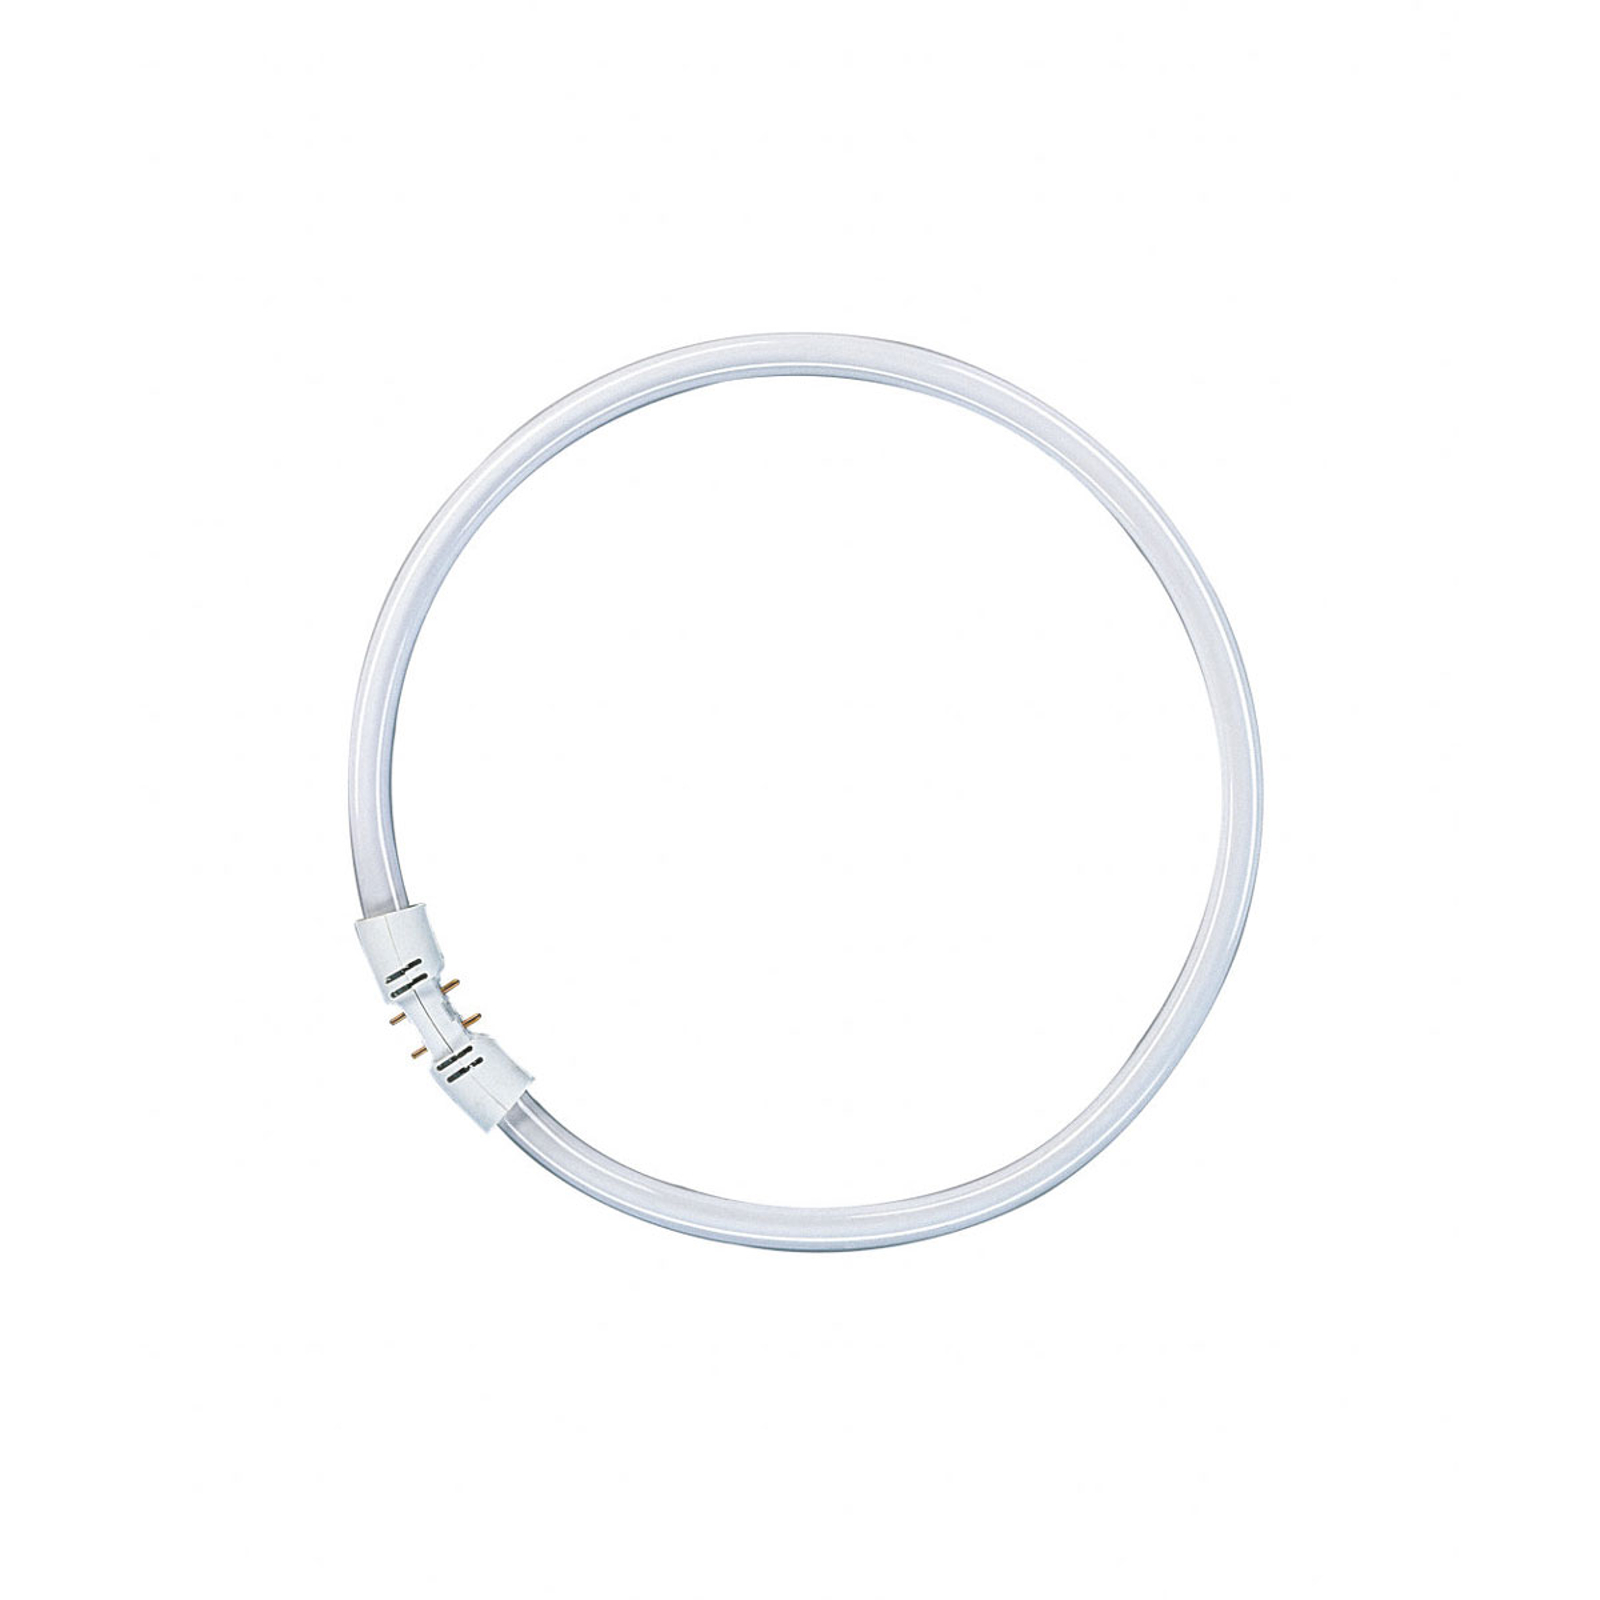 2Gx13 LUMILUX T5 Ring-Leuchtstofflampe 55W 827